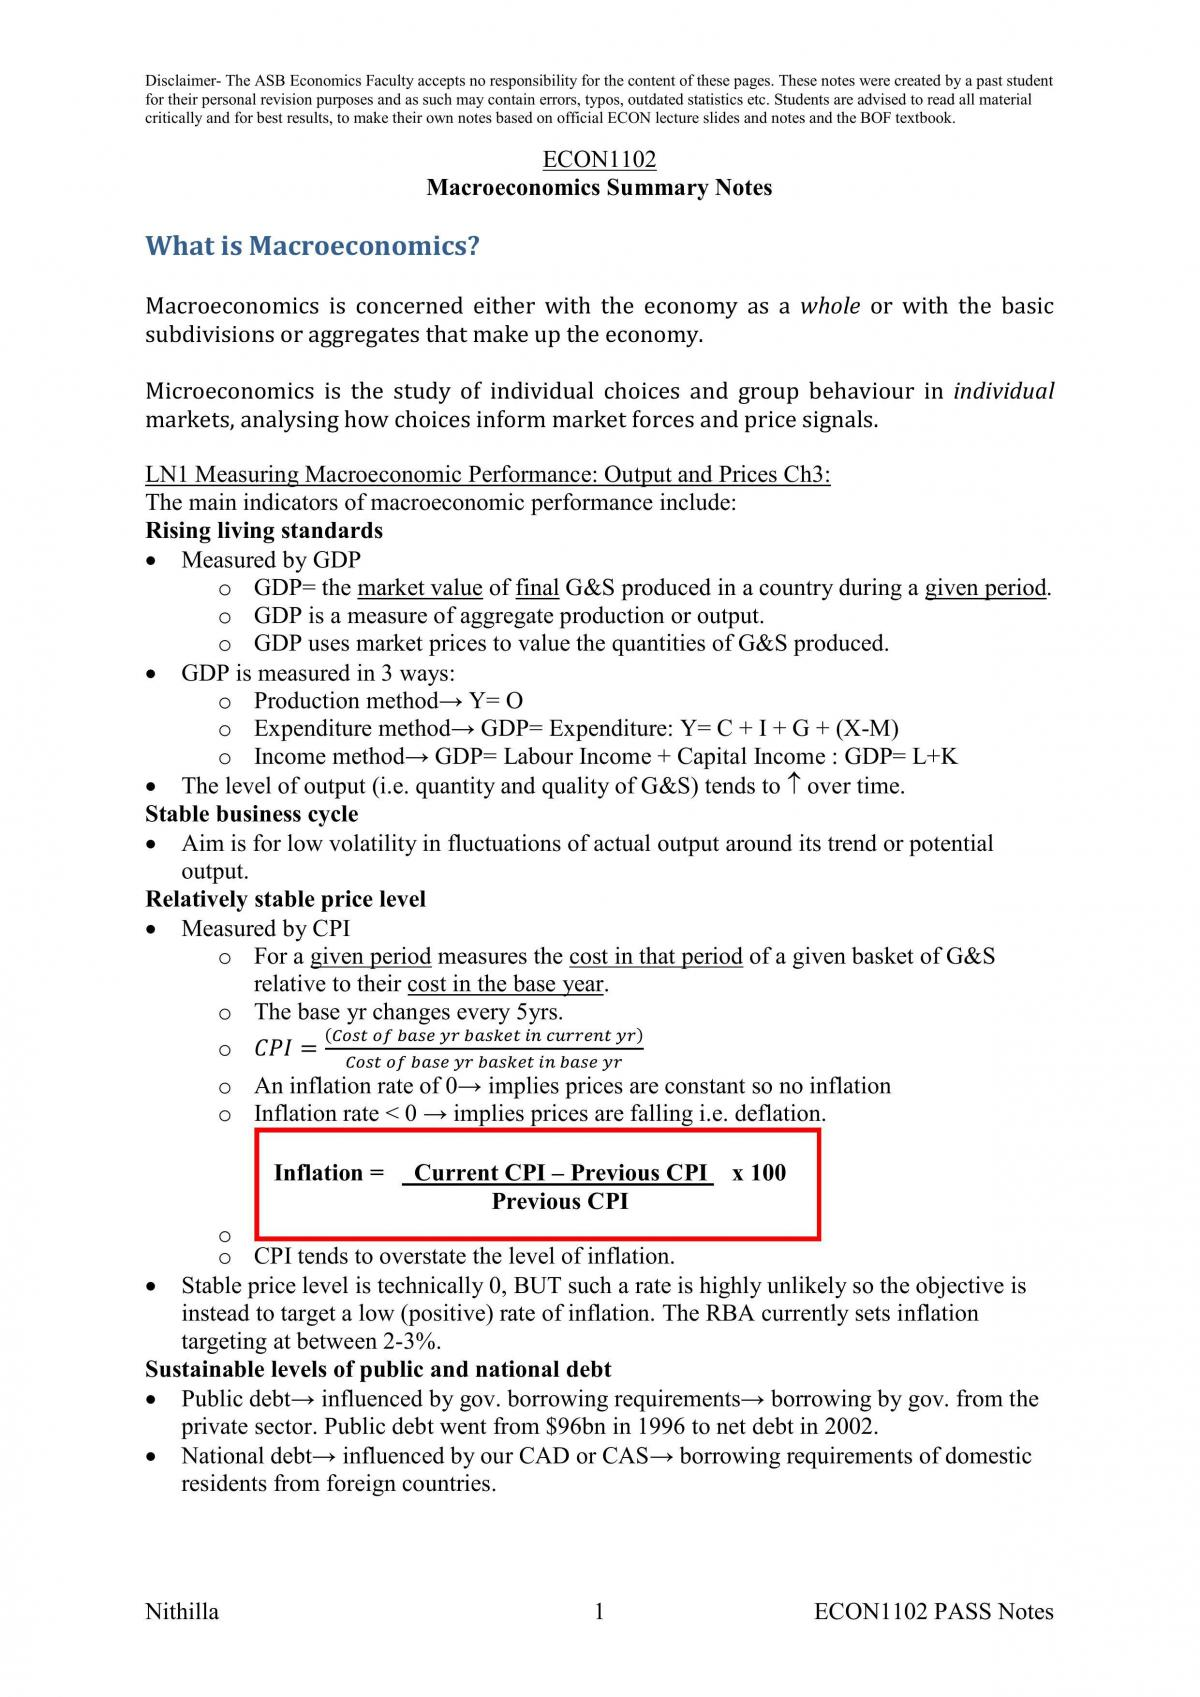 ECON1102 Final Exam Notes - Page 1